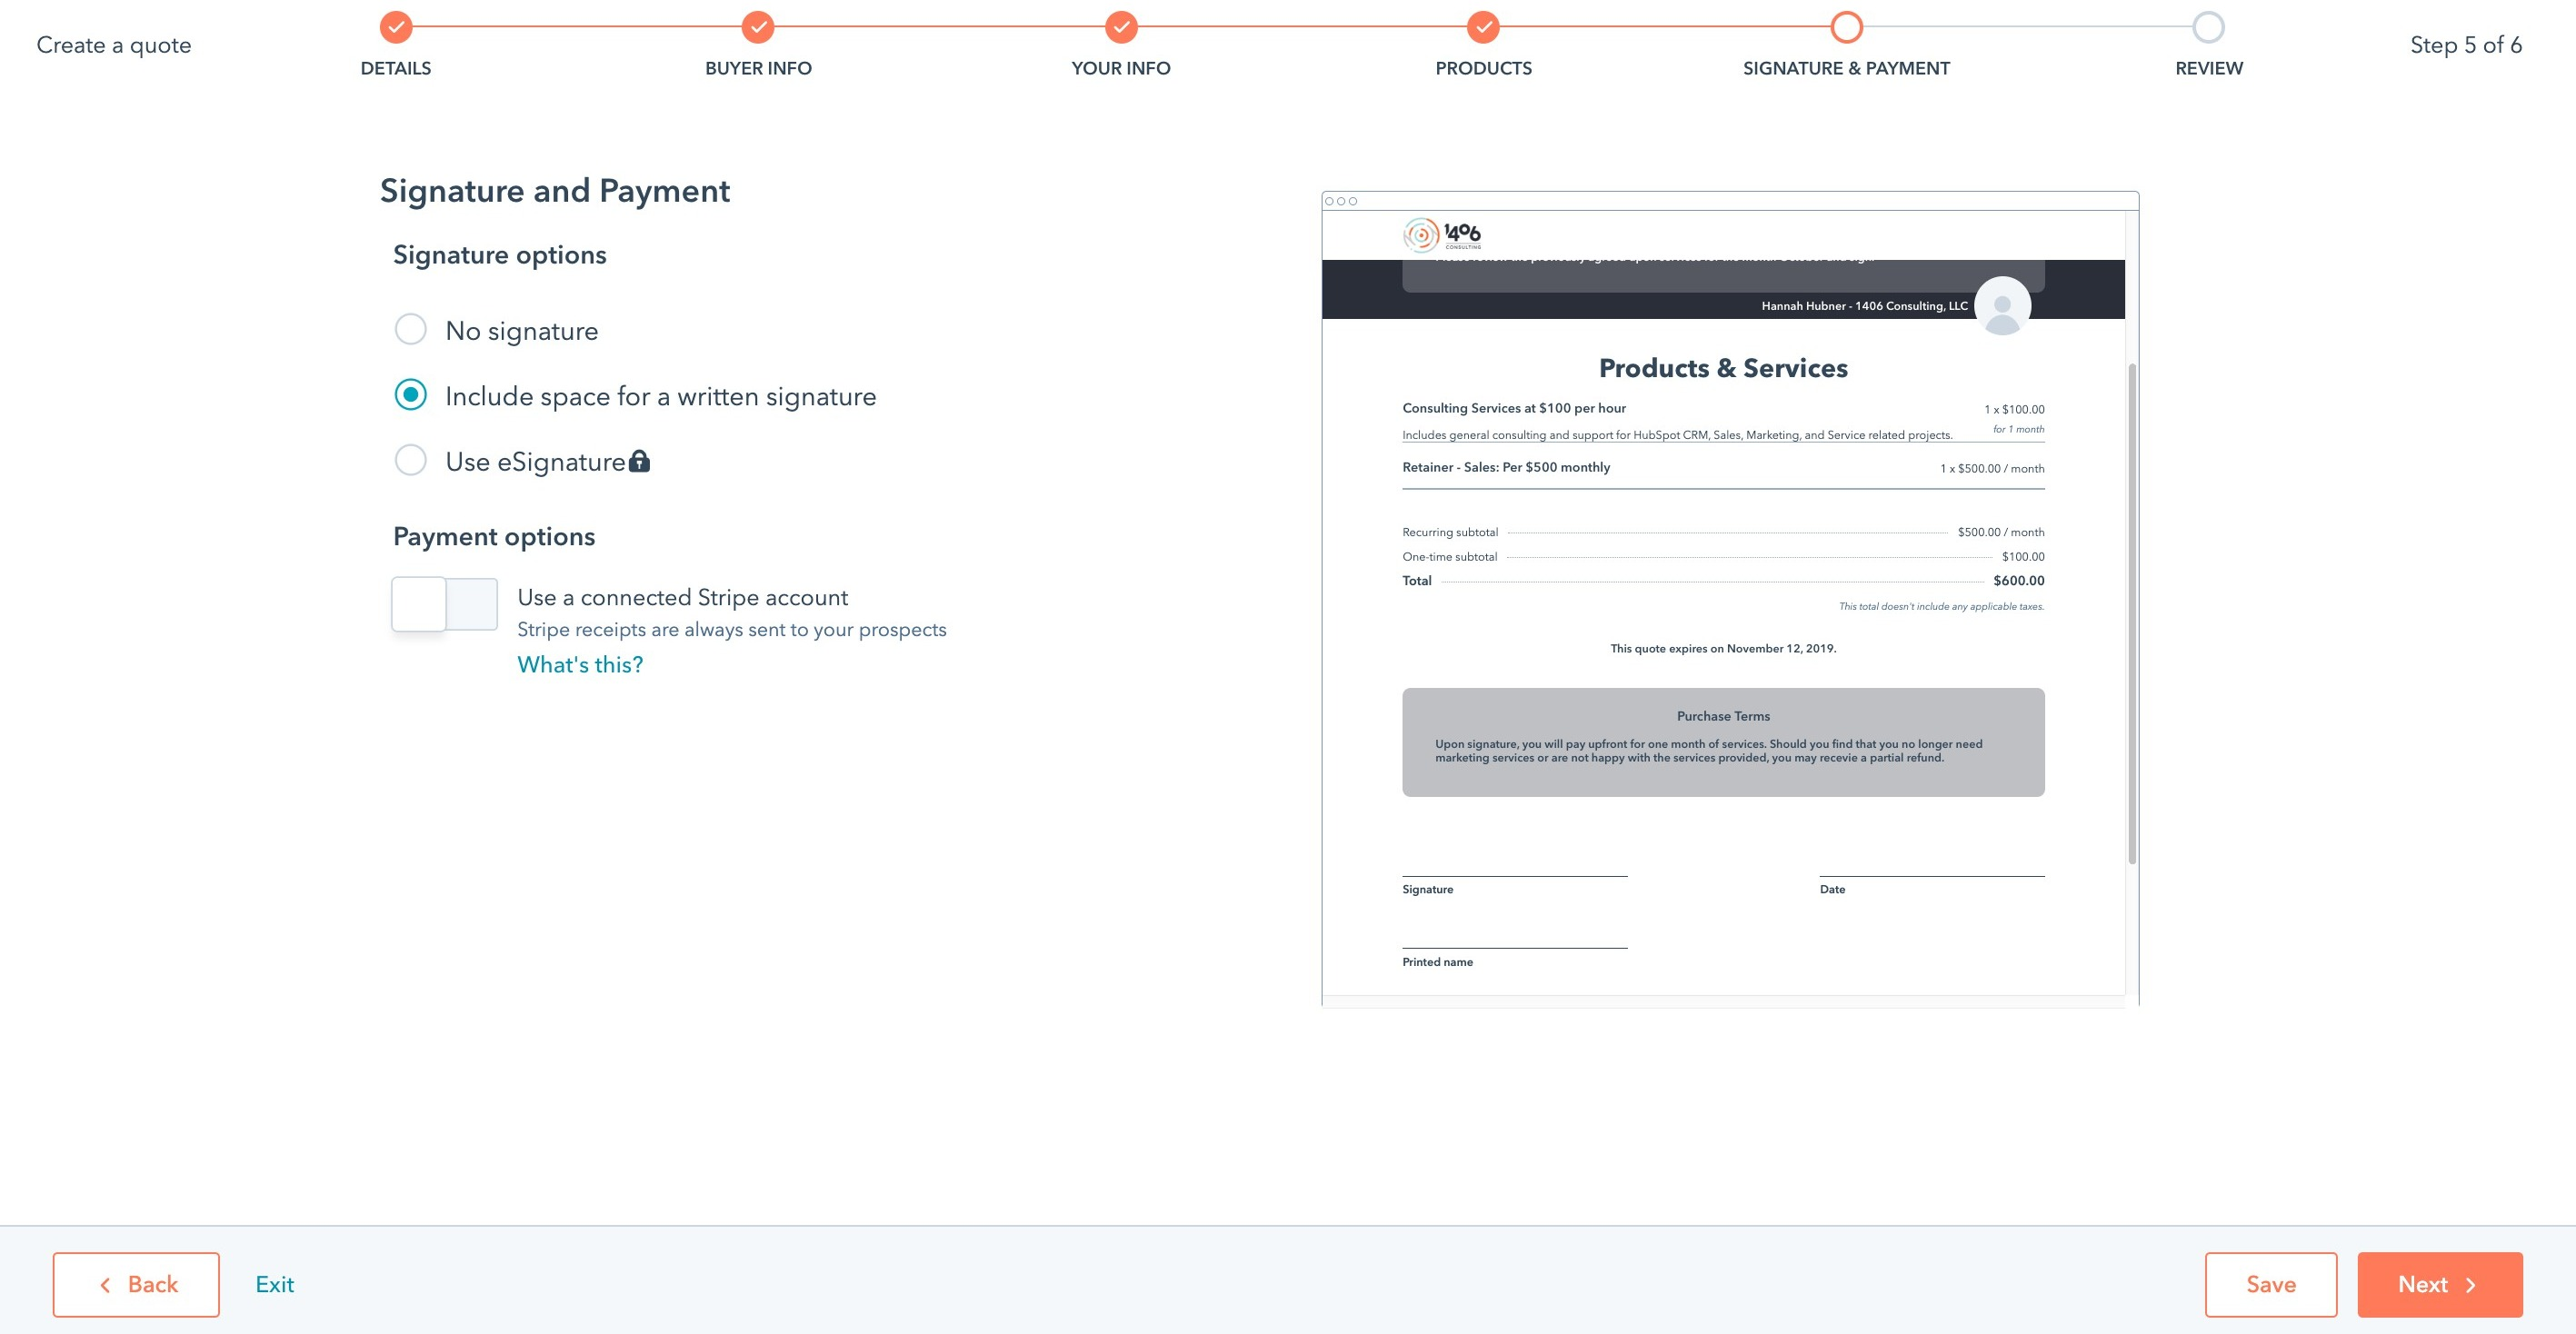 How To Use The Quotes Feature In HubSpot